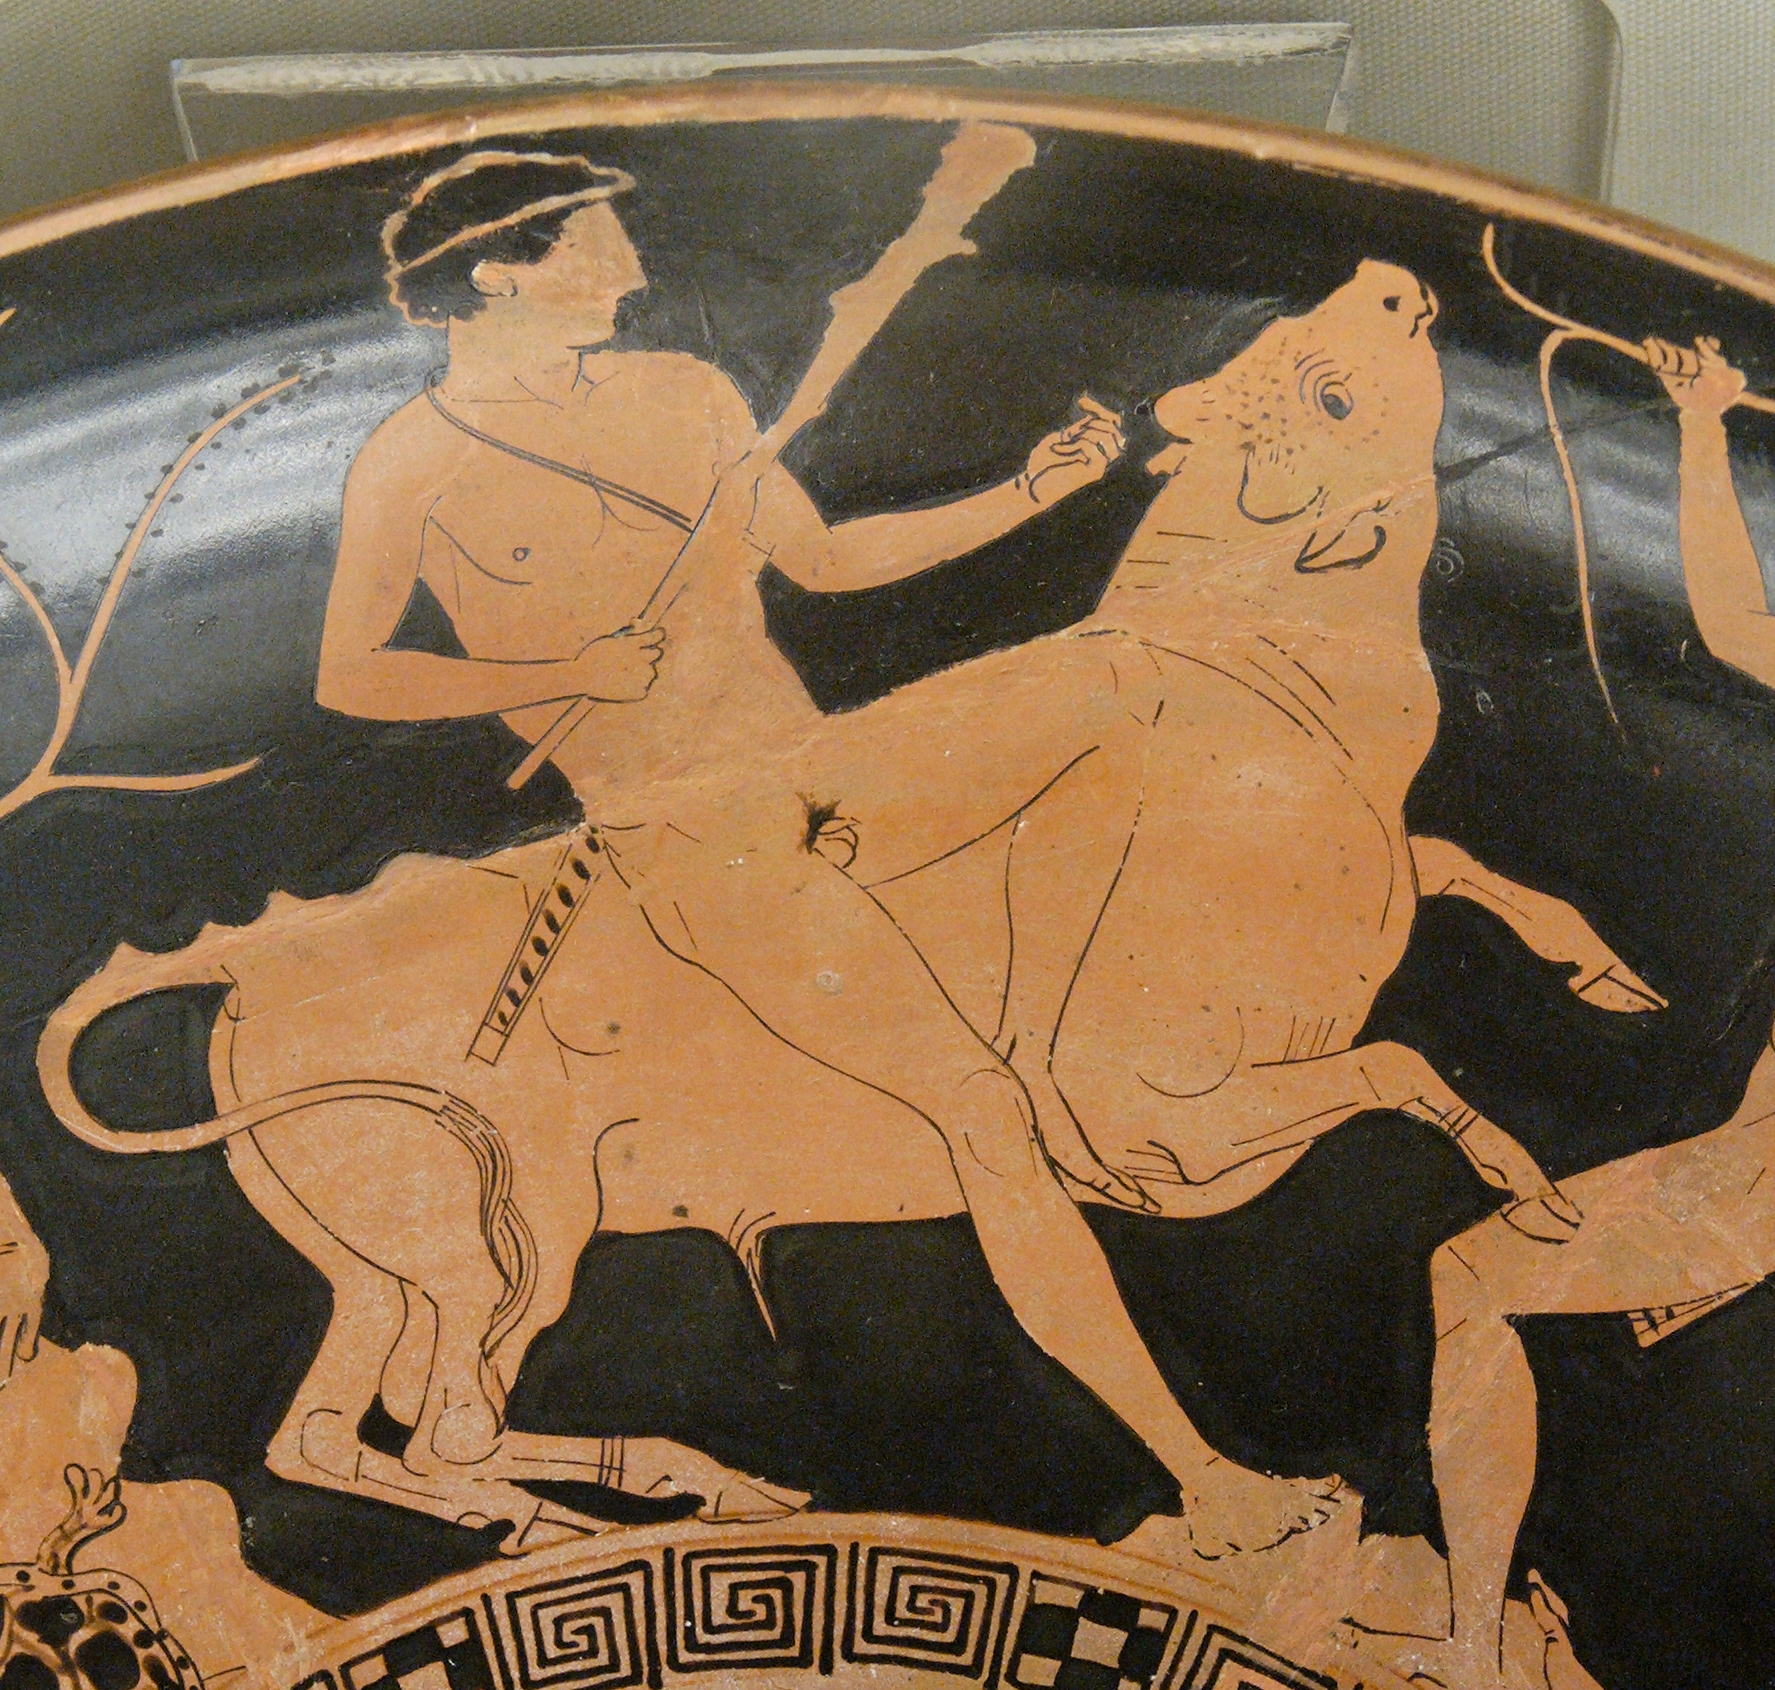 https://upload.wikimedia.org/wikipedia/commons/4/4b/Theseus_Minotaur_BM_Vase_E84_n2.jpg